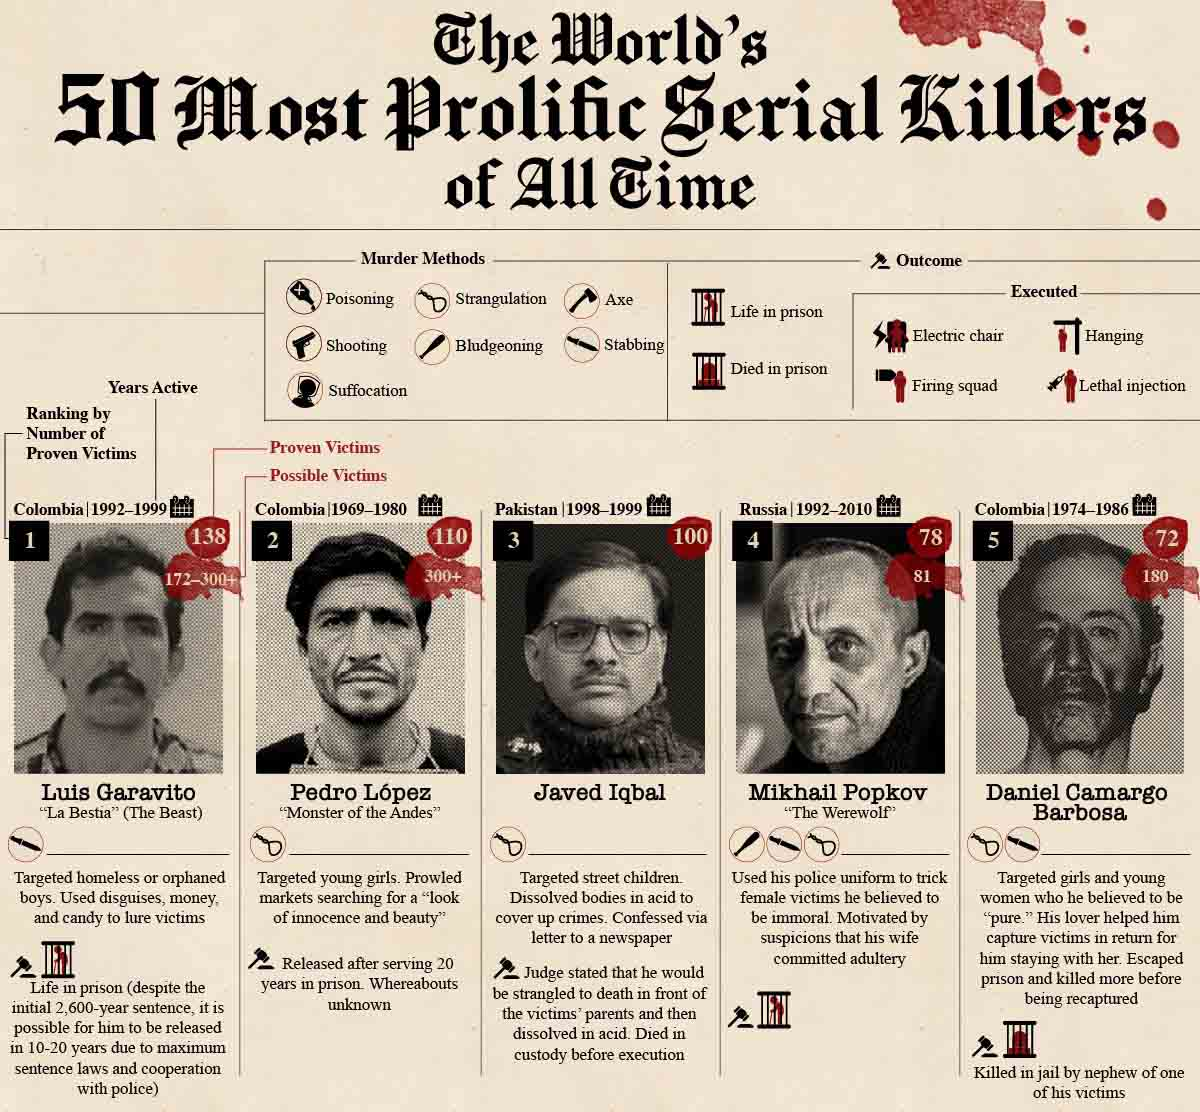 The World's Most Prolific Serial Killers of All Time